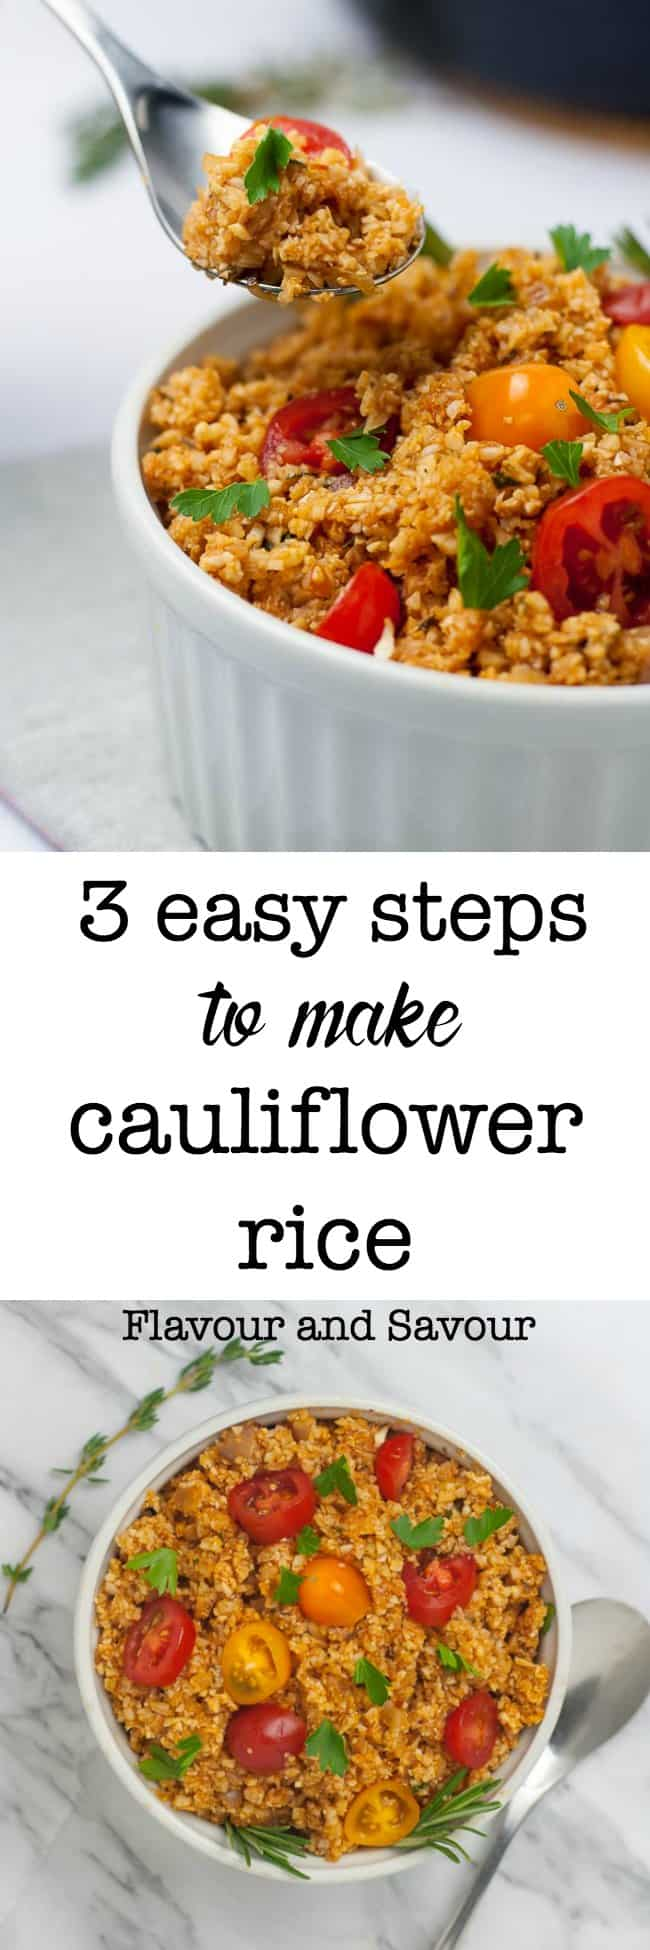 3 Easy Steps to Make Cauliflower Rice. Here is a low-carb alternative to regular rice. You won't believe just how good it is until you try it! Try these 3 flavour combinations, or make your own! #howtomake #cauliflower_rice #lowcarb #cleaneating #paleo #whole30